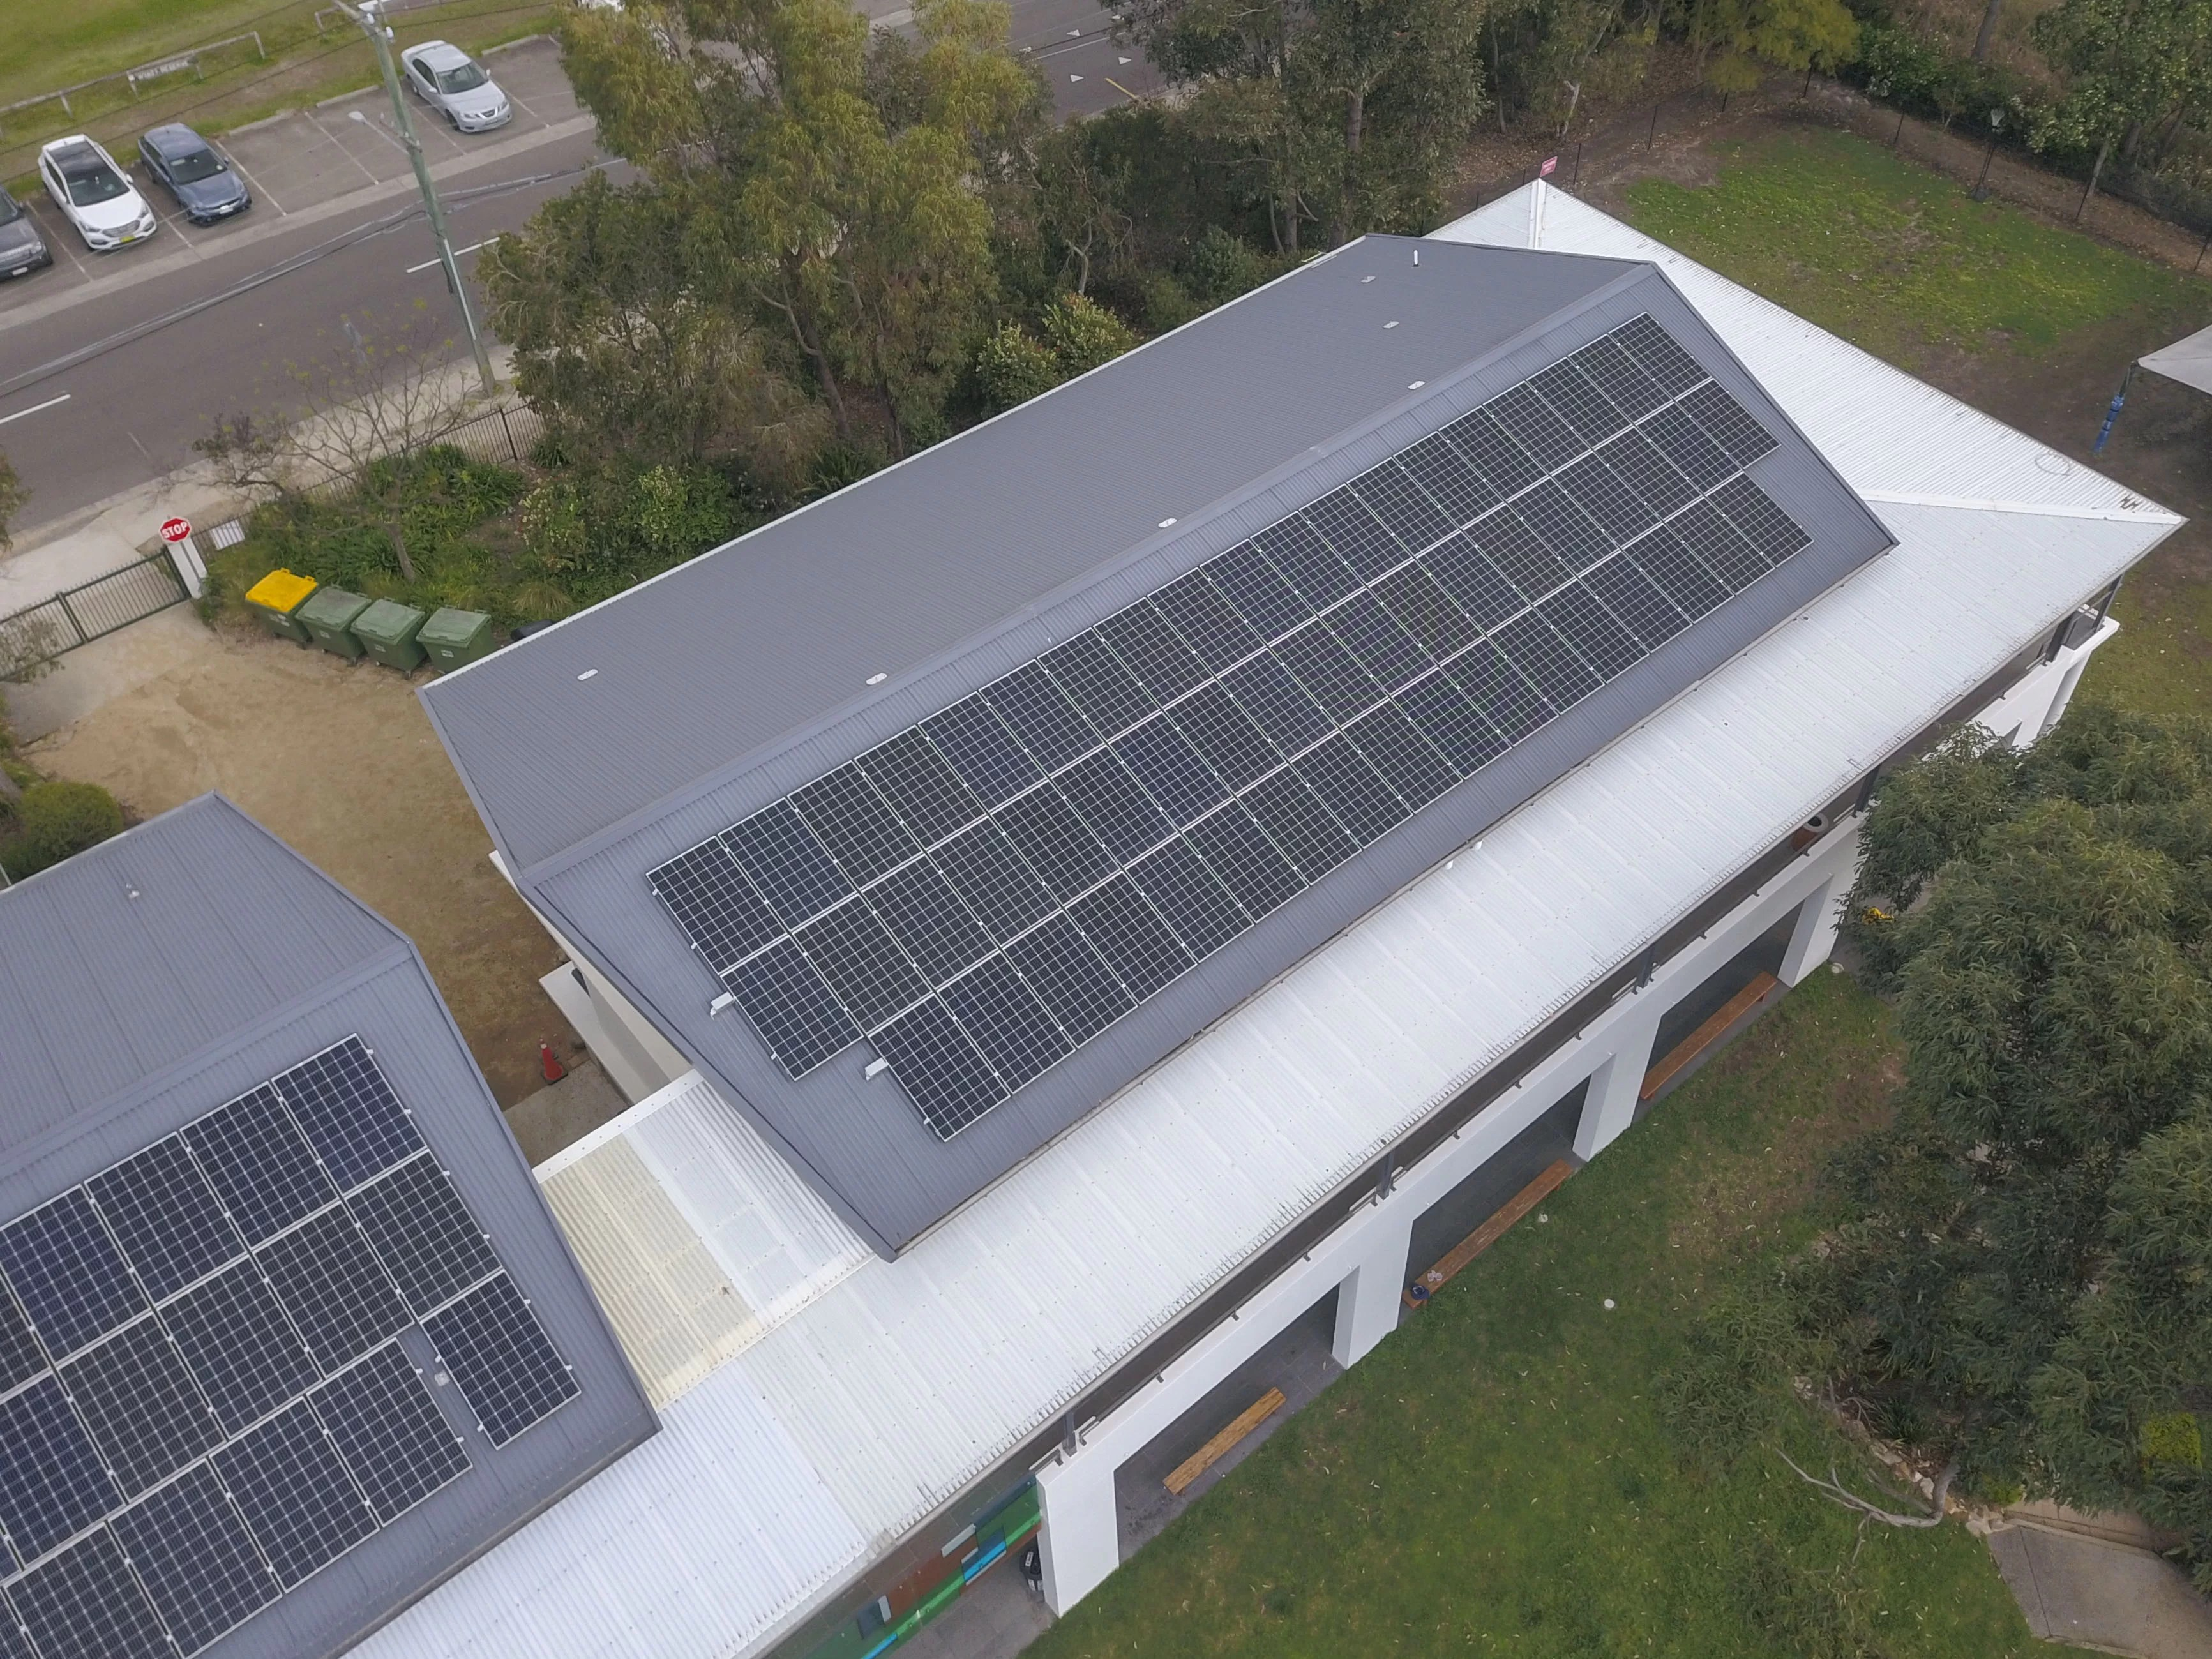 John Colet School Solar Panels Aerial View